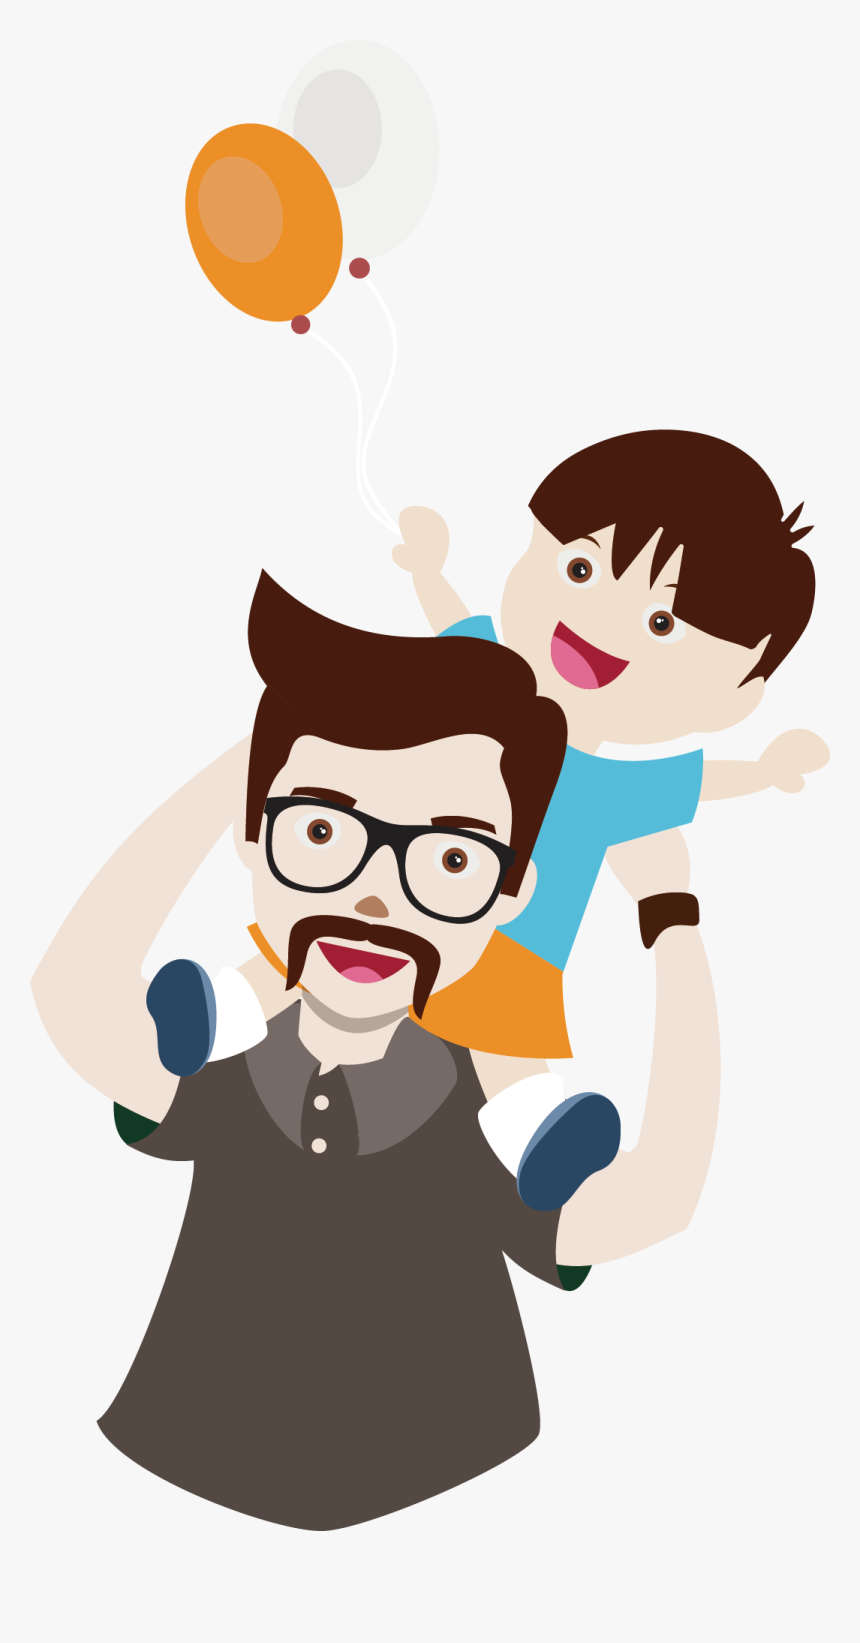 Dad And Sprite Father Cartoon Baby Son Clipart Dad And Son Cartoon Png Transparent Png Transparent Png Image Pngitem Two children hanging out with their dad in the living room at christmas. dad and sprite father cartoon baby son